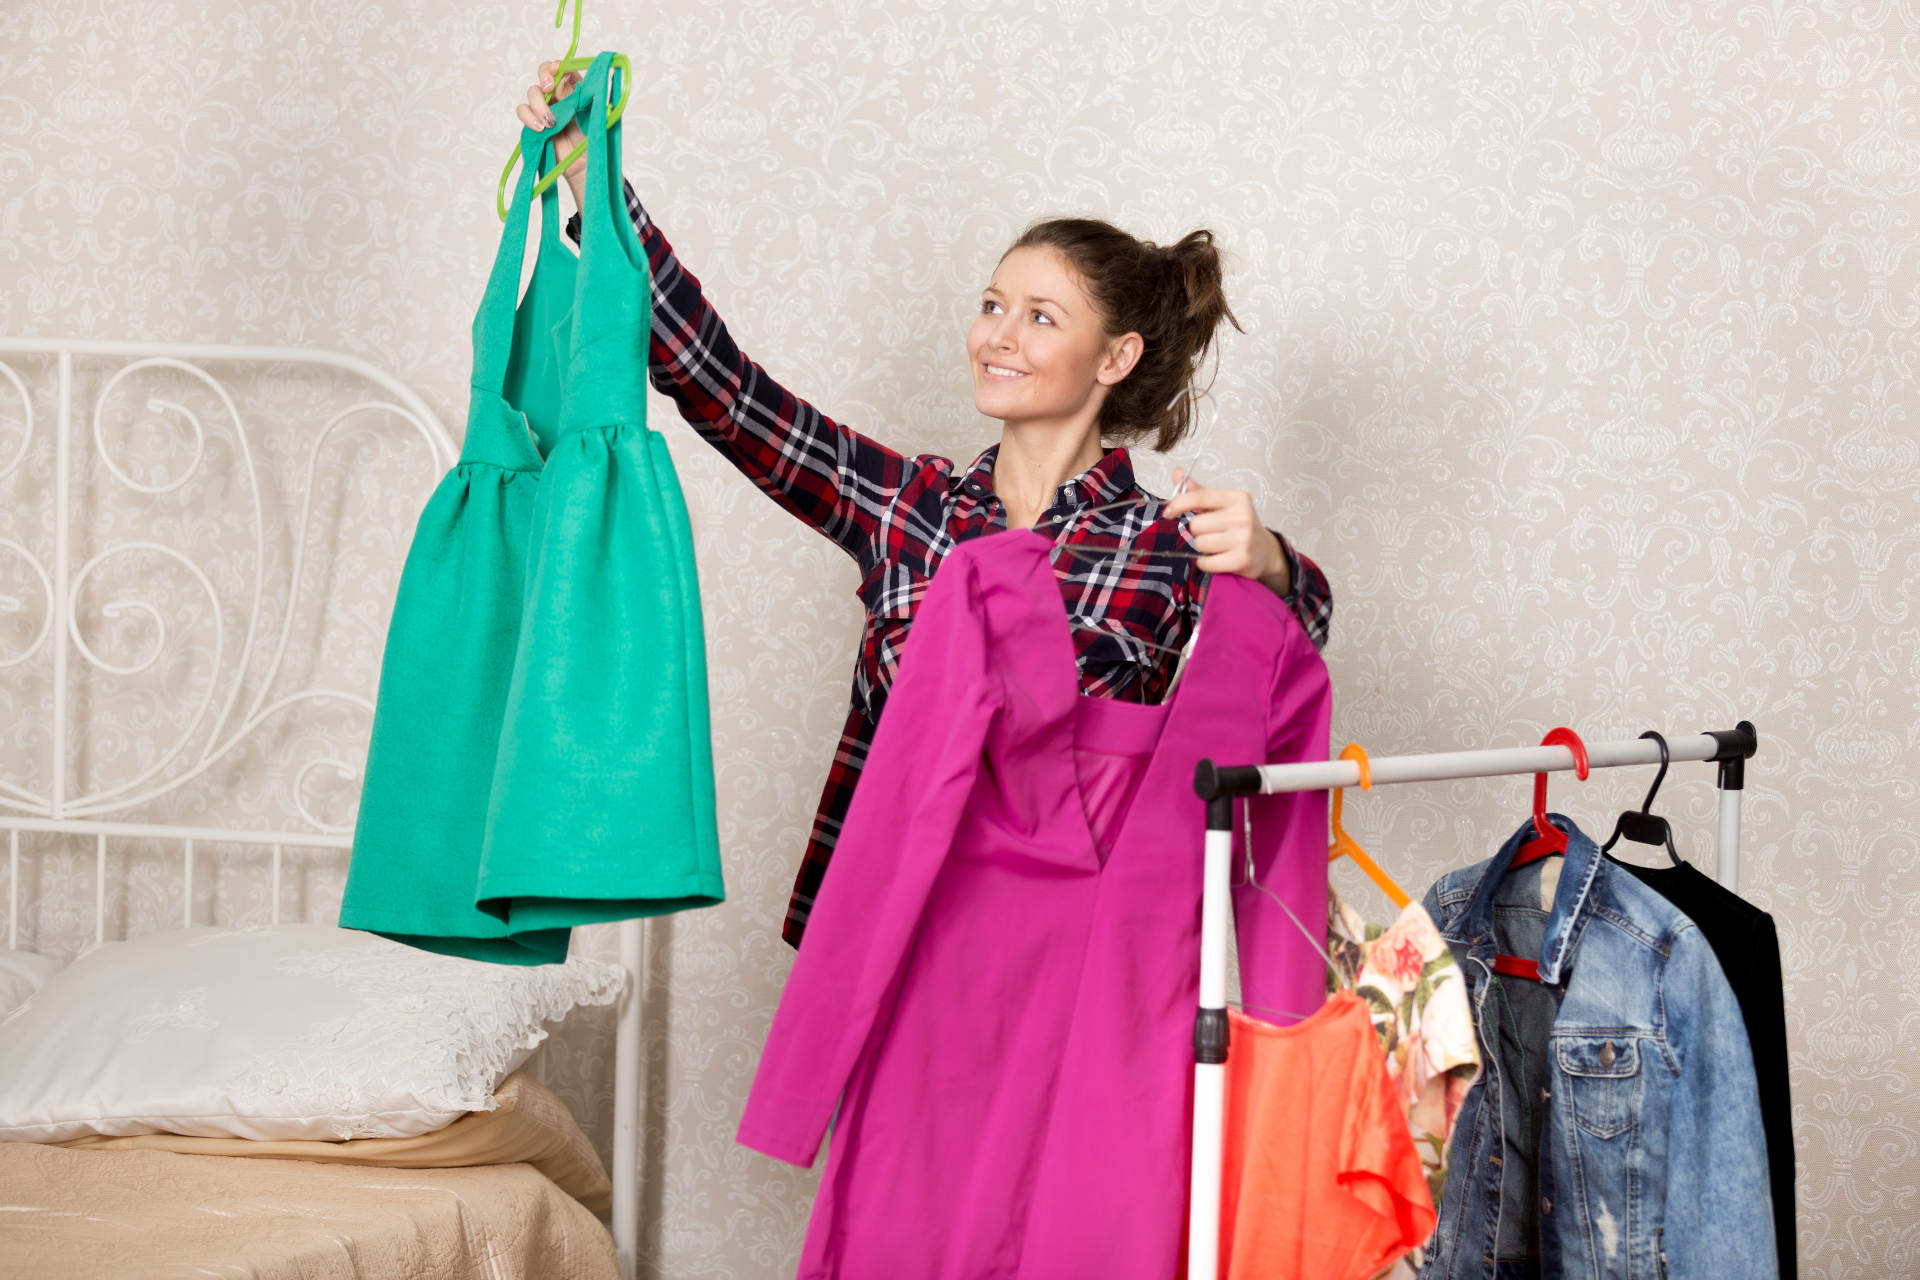 How Your Choice of Clothing Can Affect Your Mood,